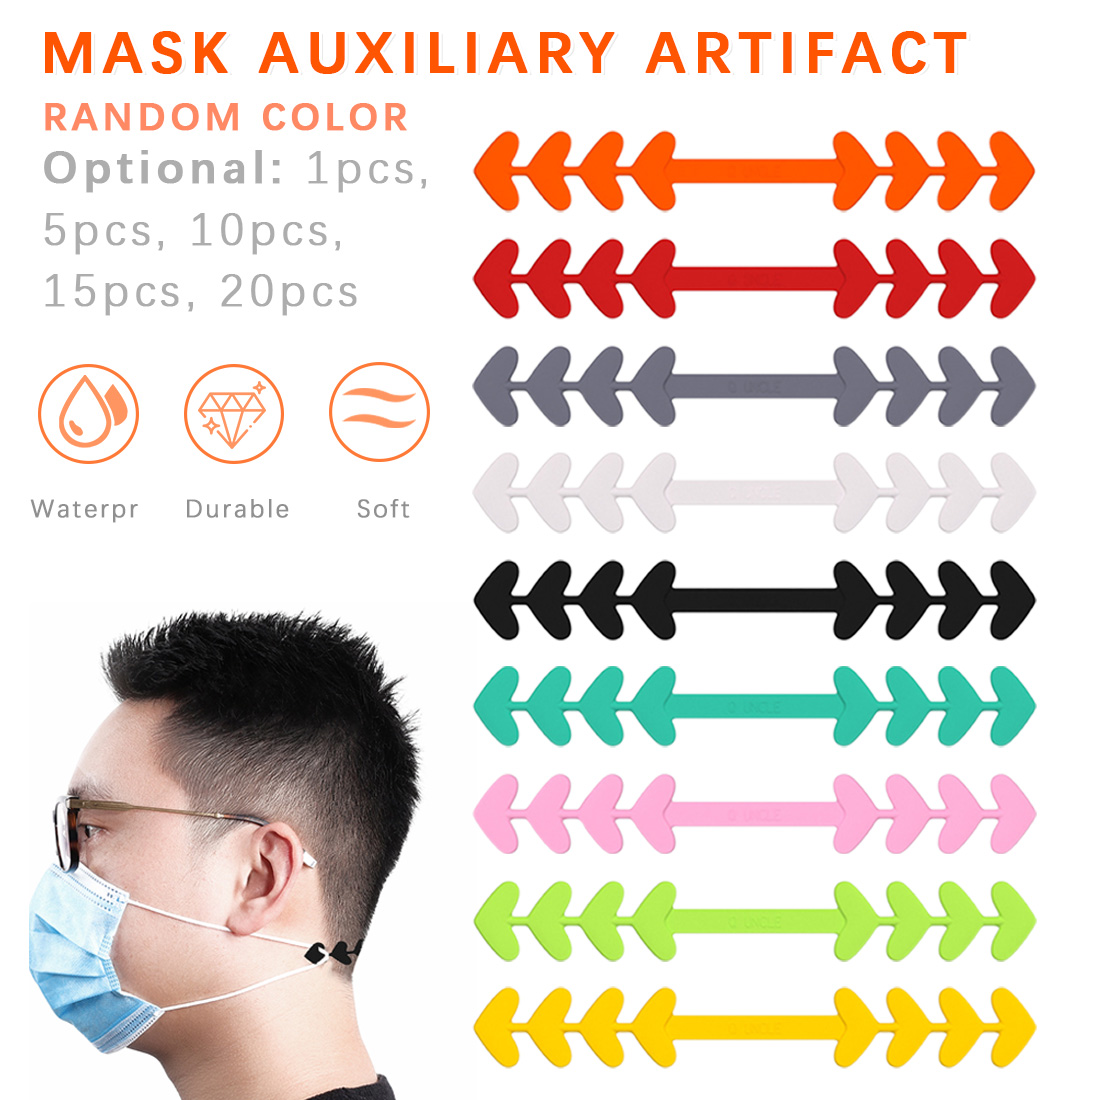 Mask Extension Strap Colorful Ear Hook Mask Extender To Release Your Ear And Relieve Pain Adjustable Mask Rope Extension Buckle